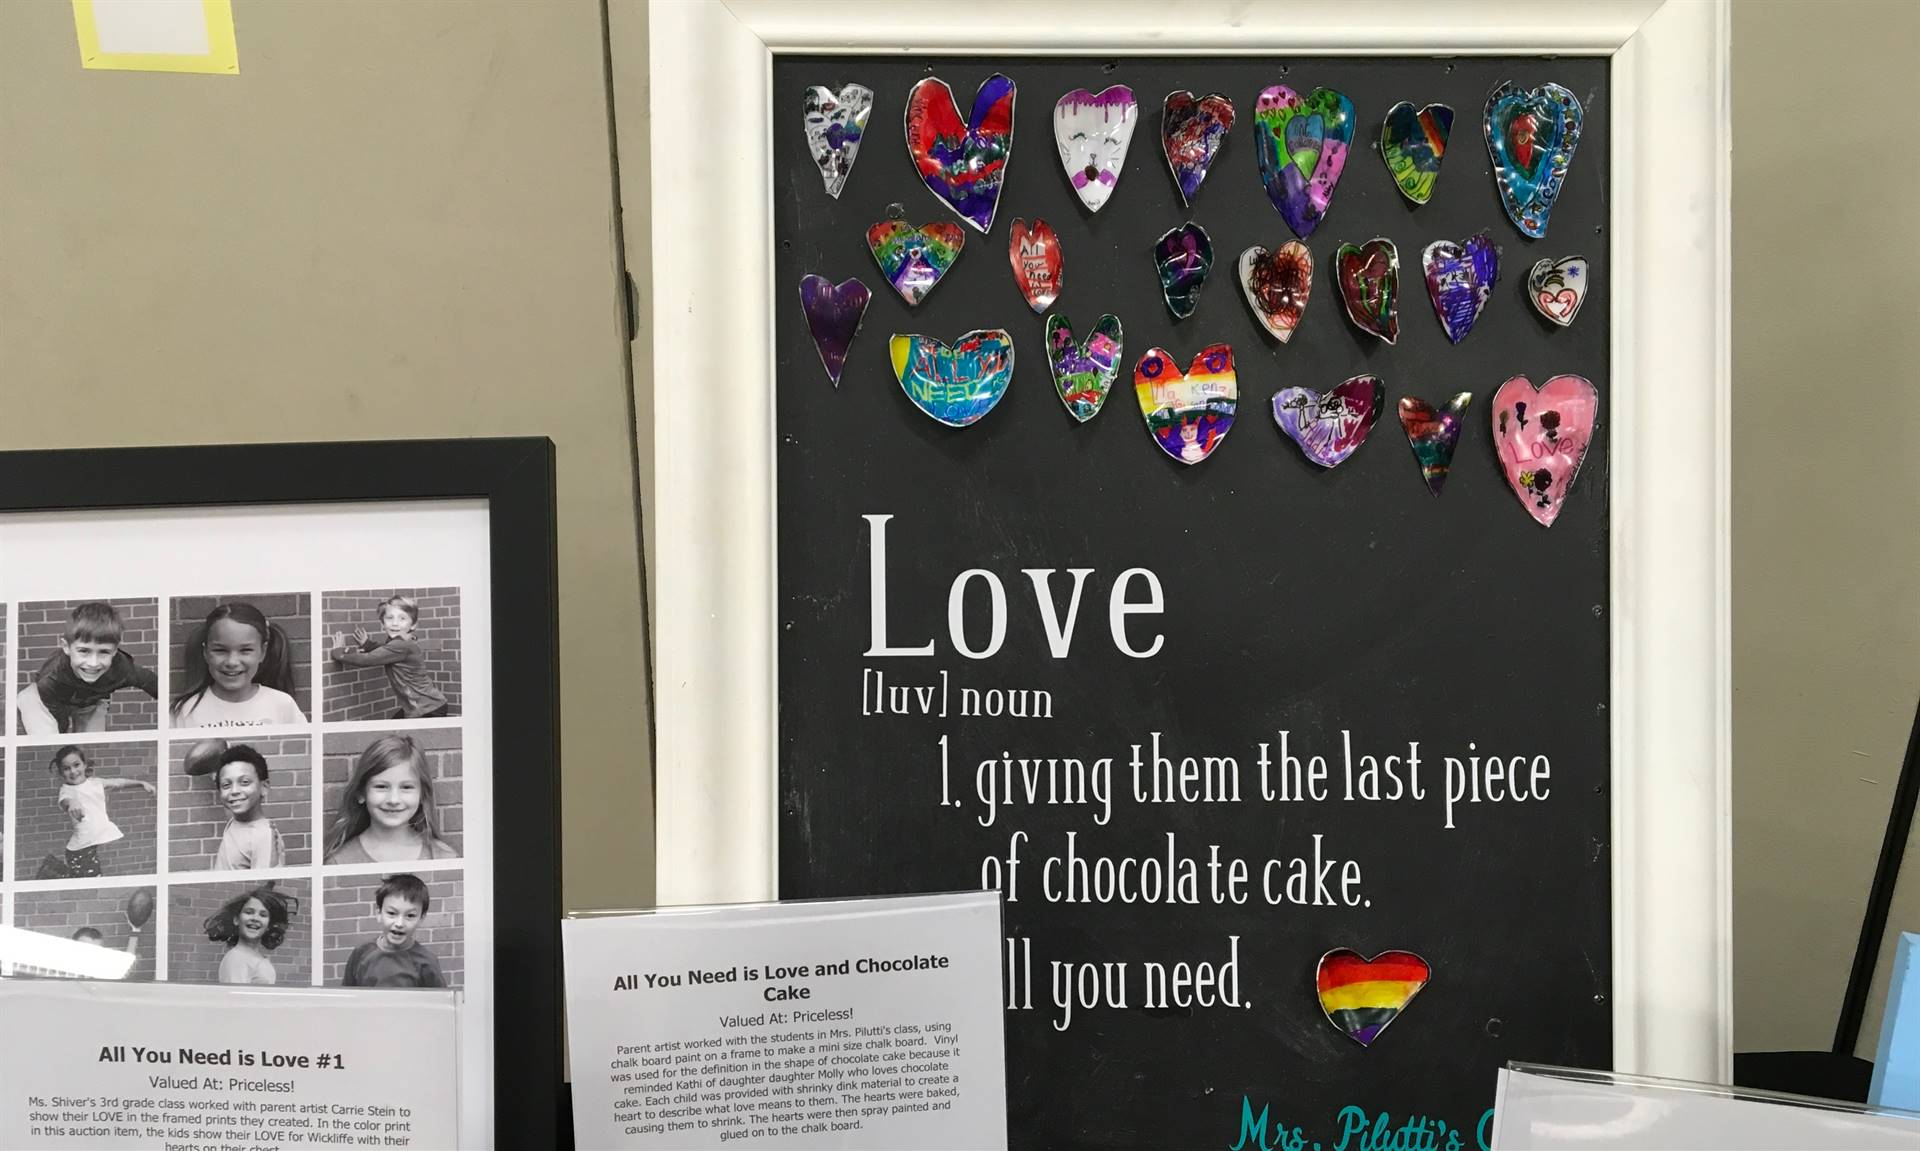 Informal Affair Art Project: Love and Chocolate Cake